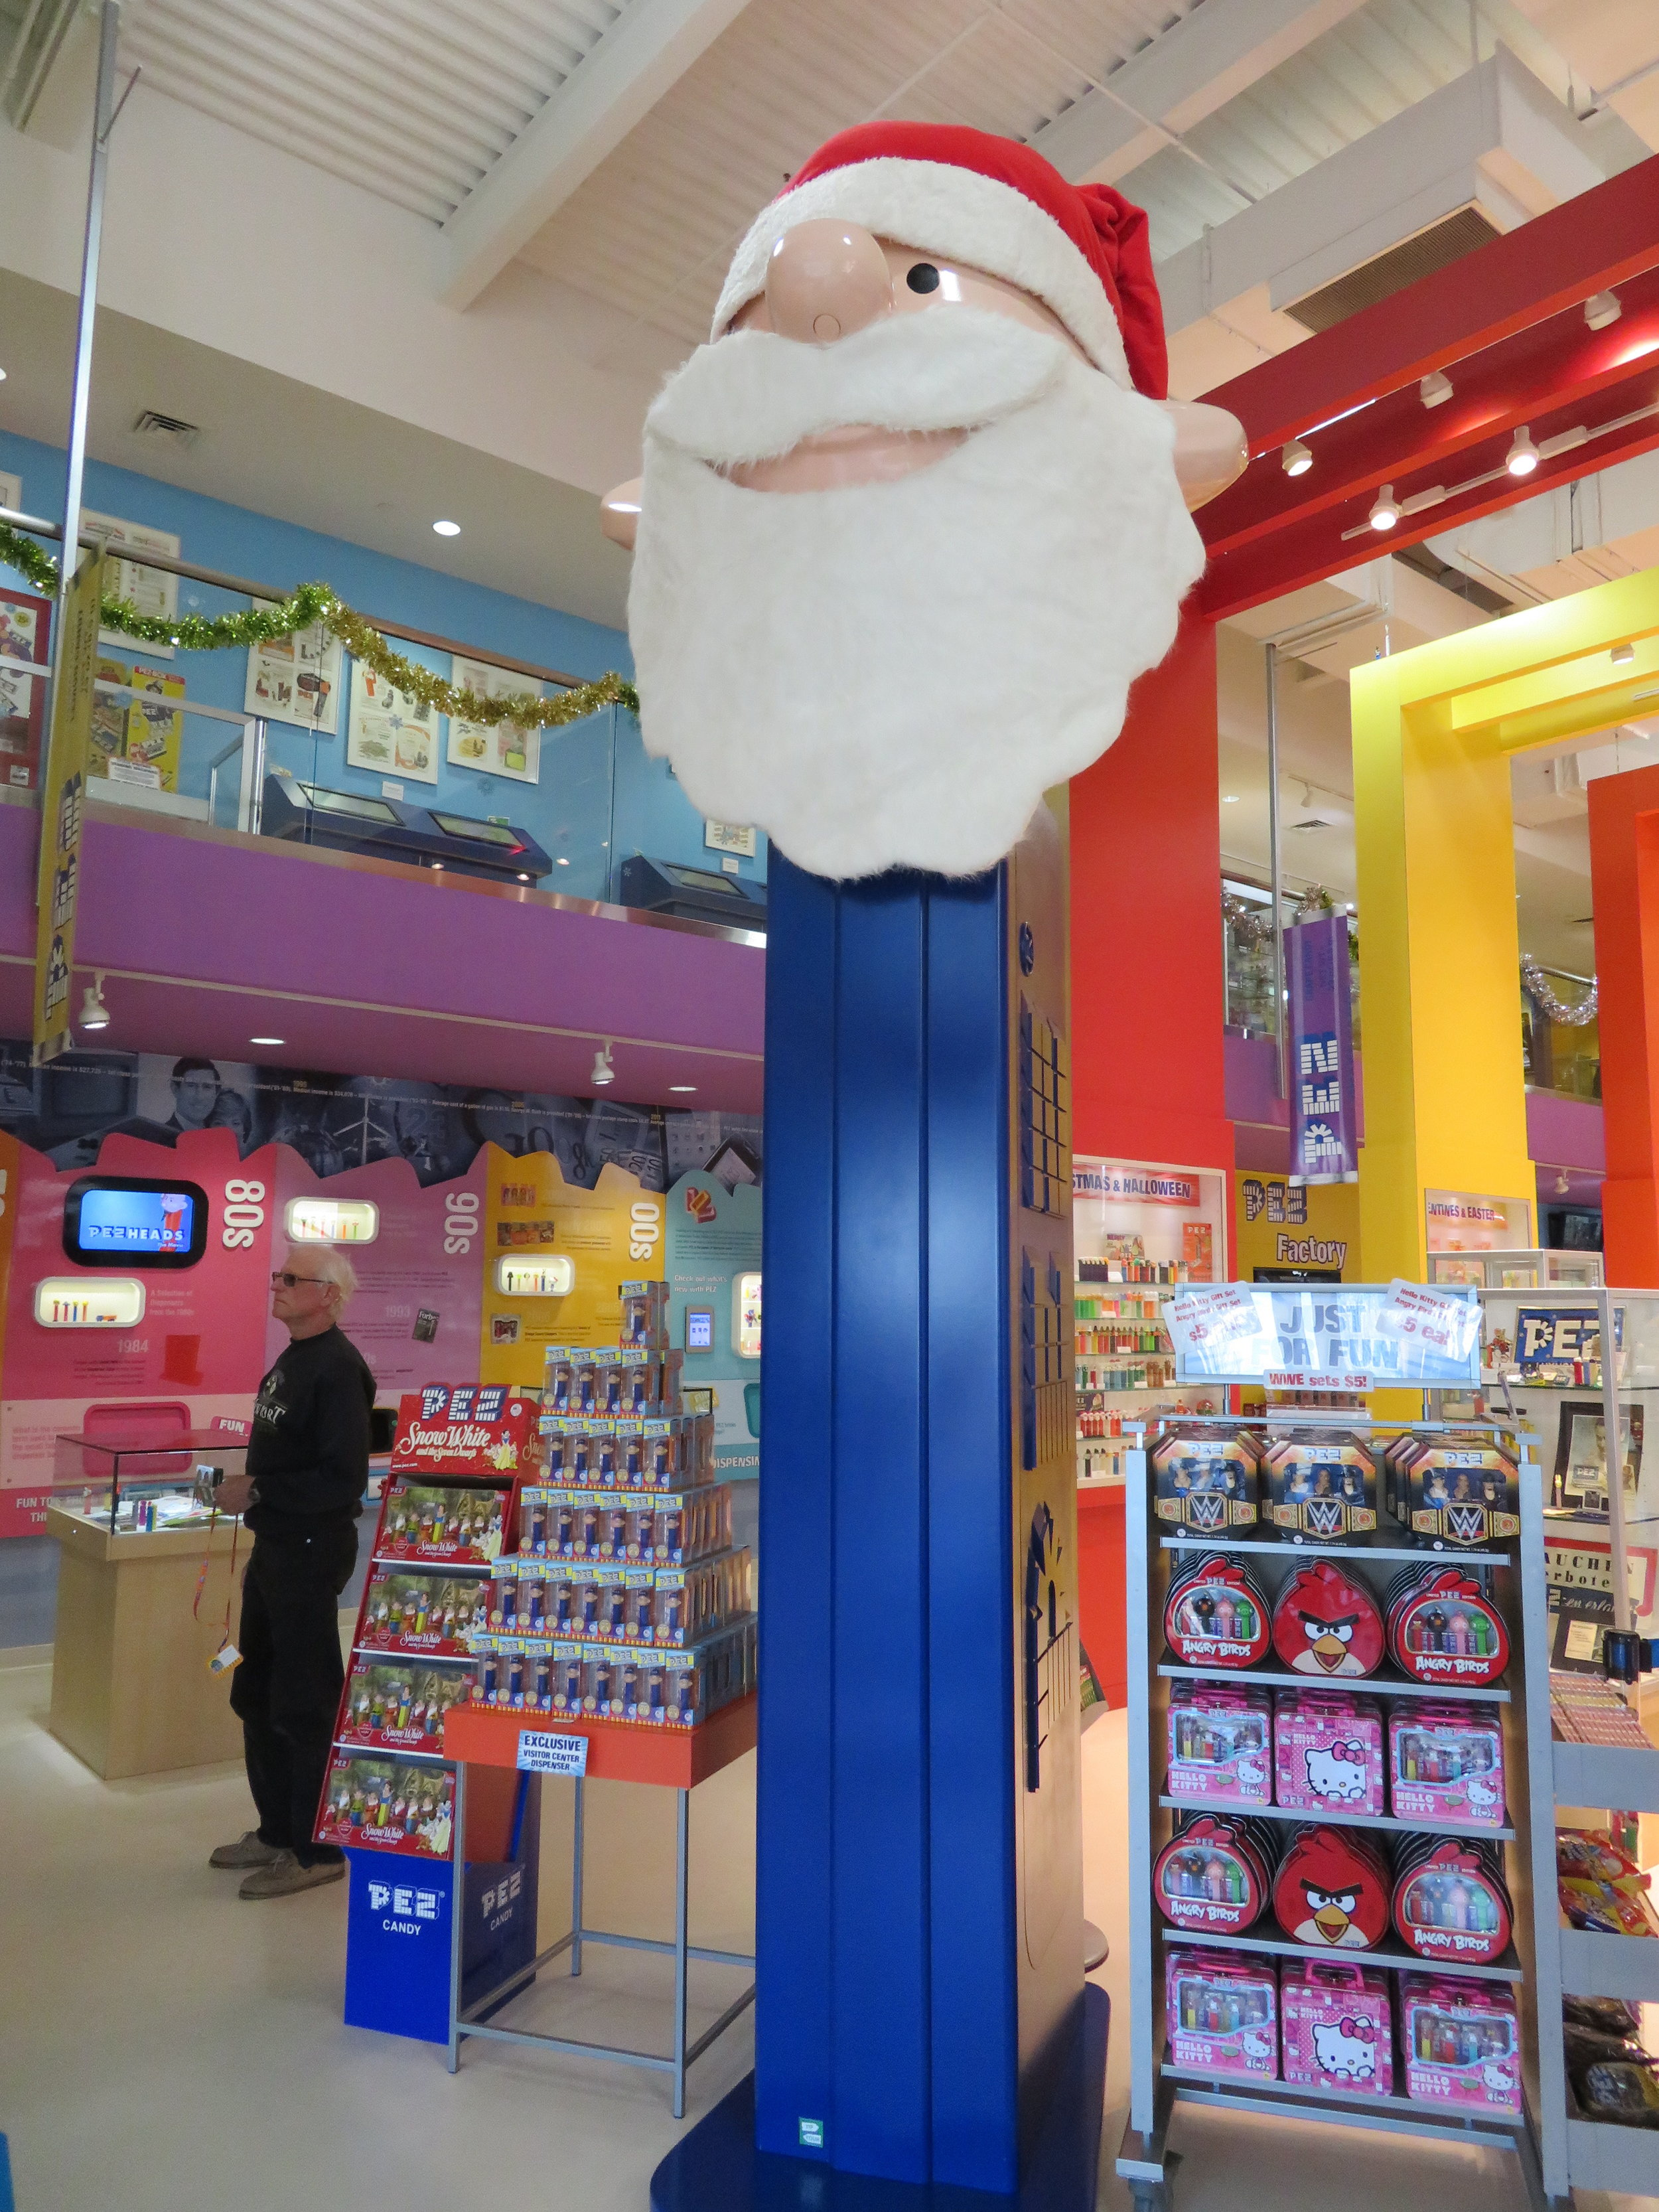 World's biggest PEZ dispenser ... makes you want to say WOW! (kinda...)